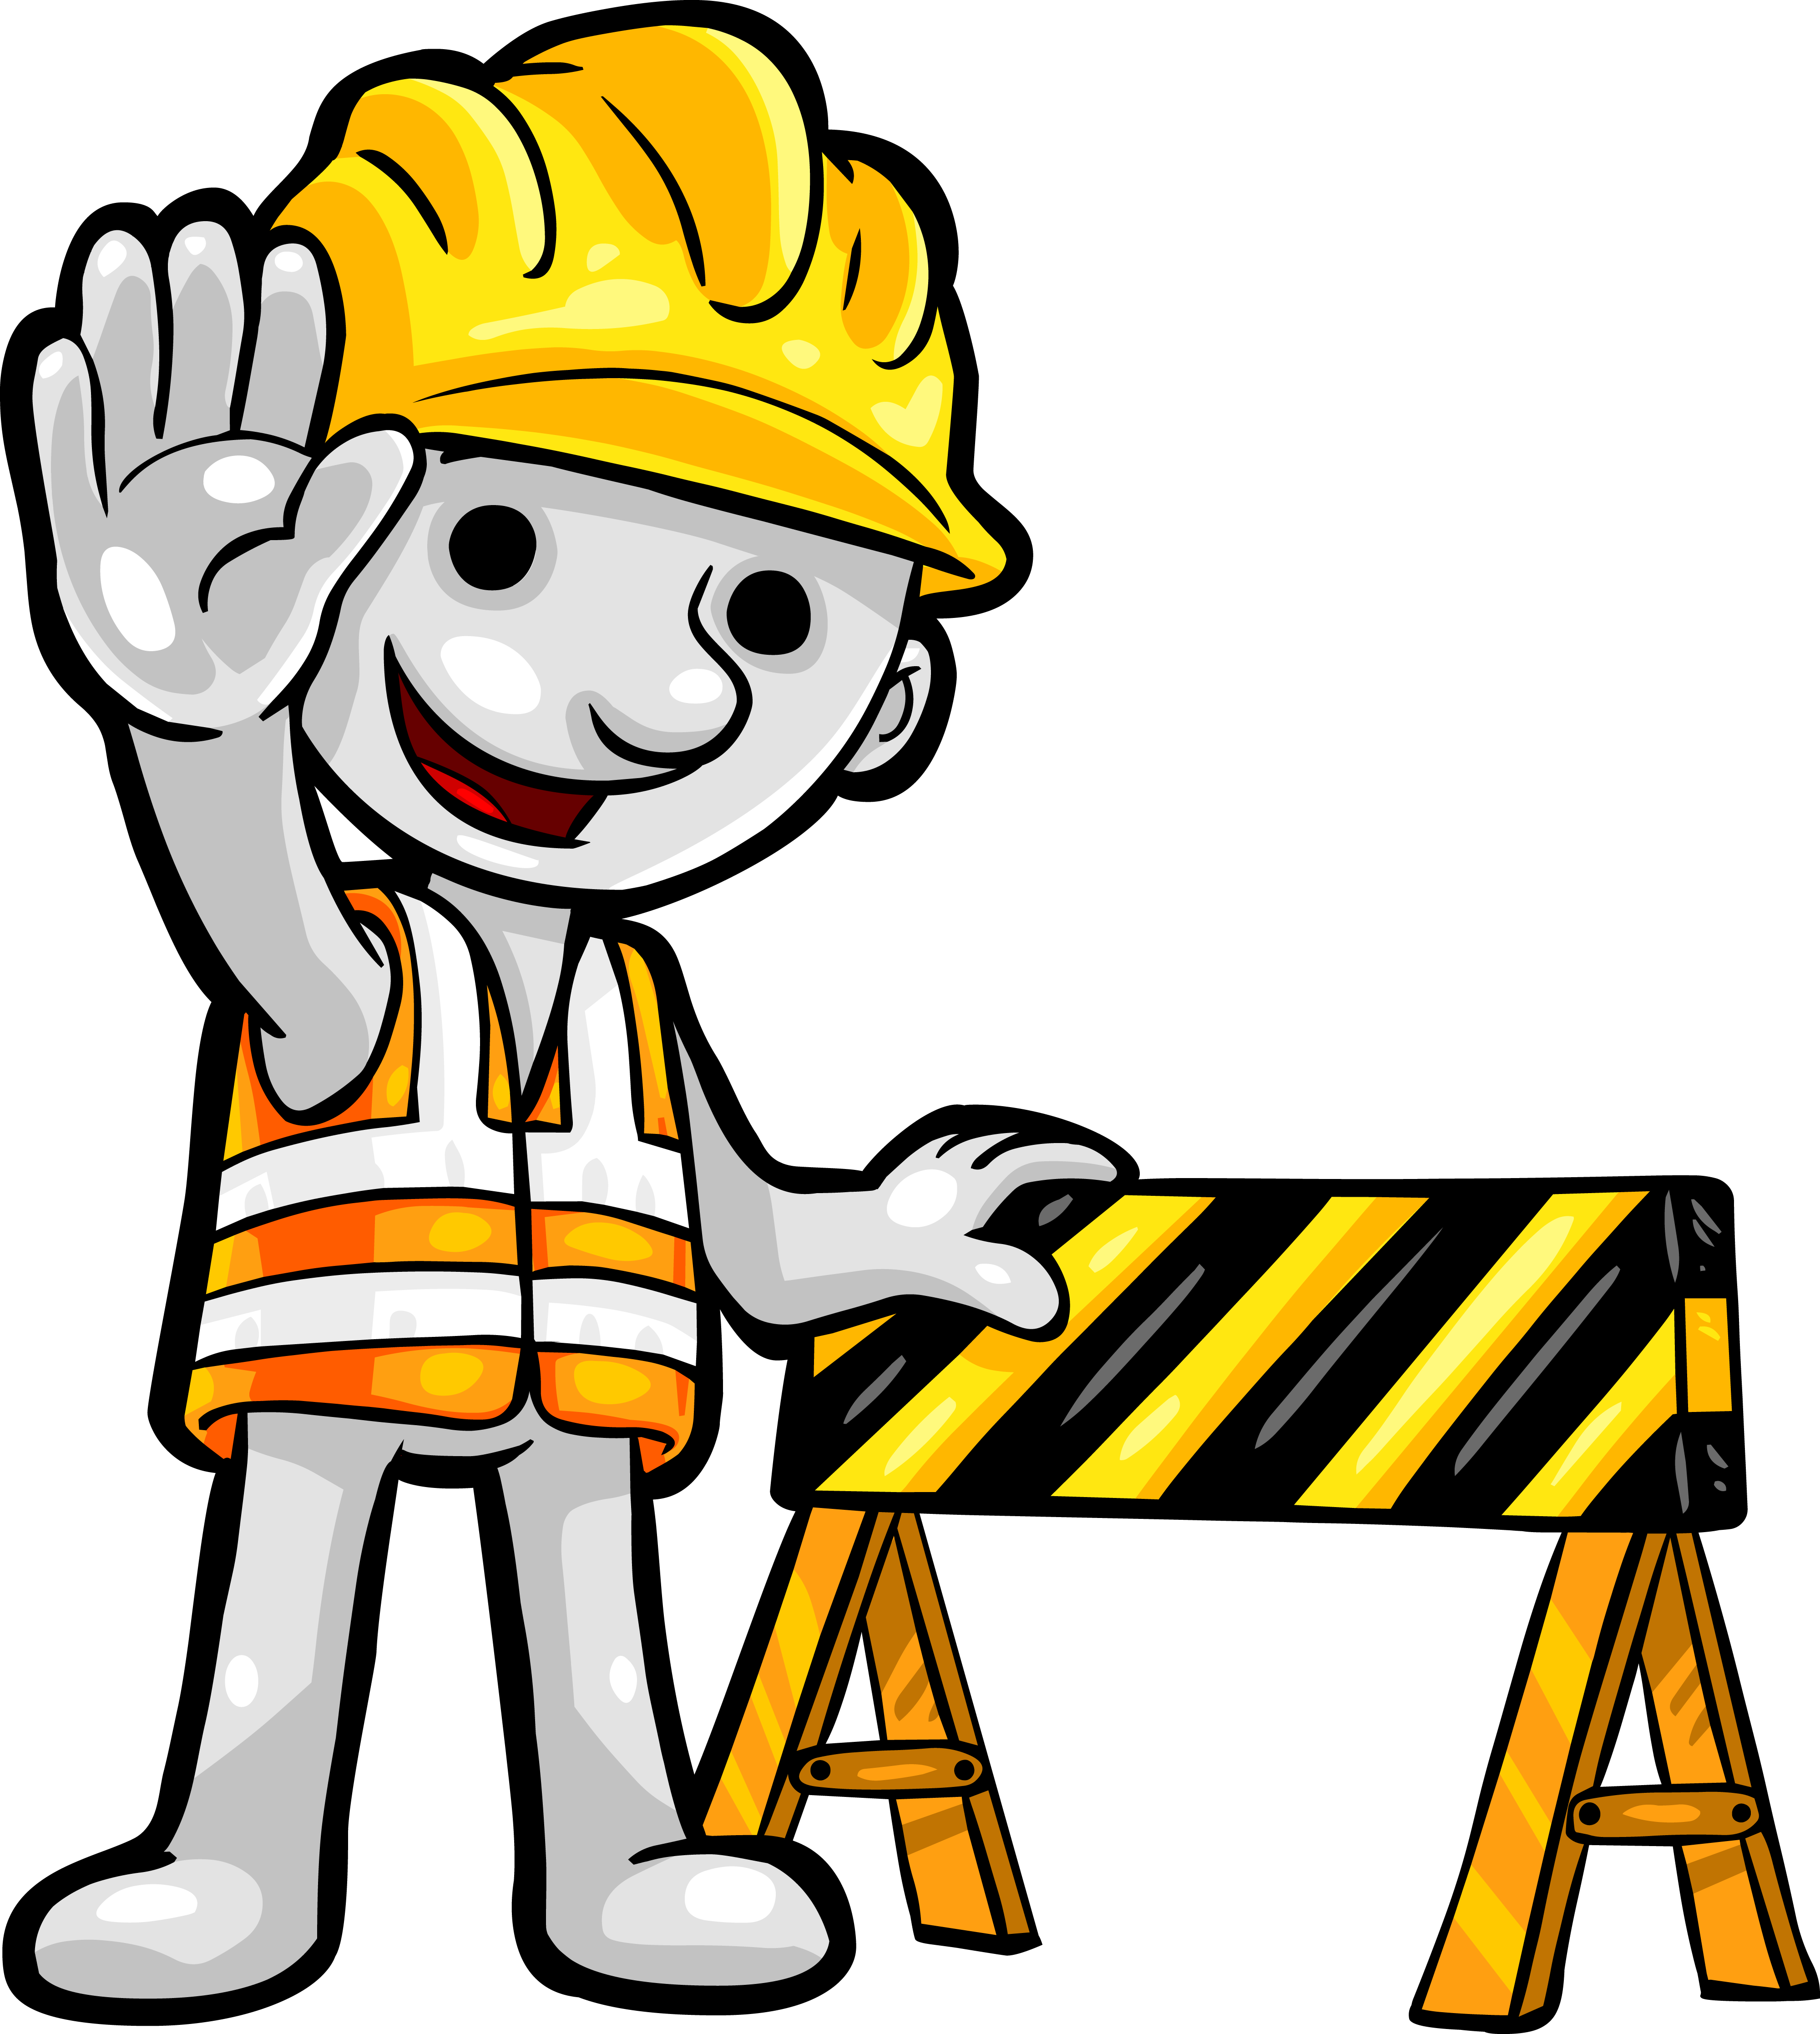 Pin by perfect choice on safety sign | Construction theme ...